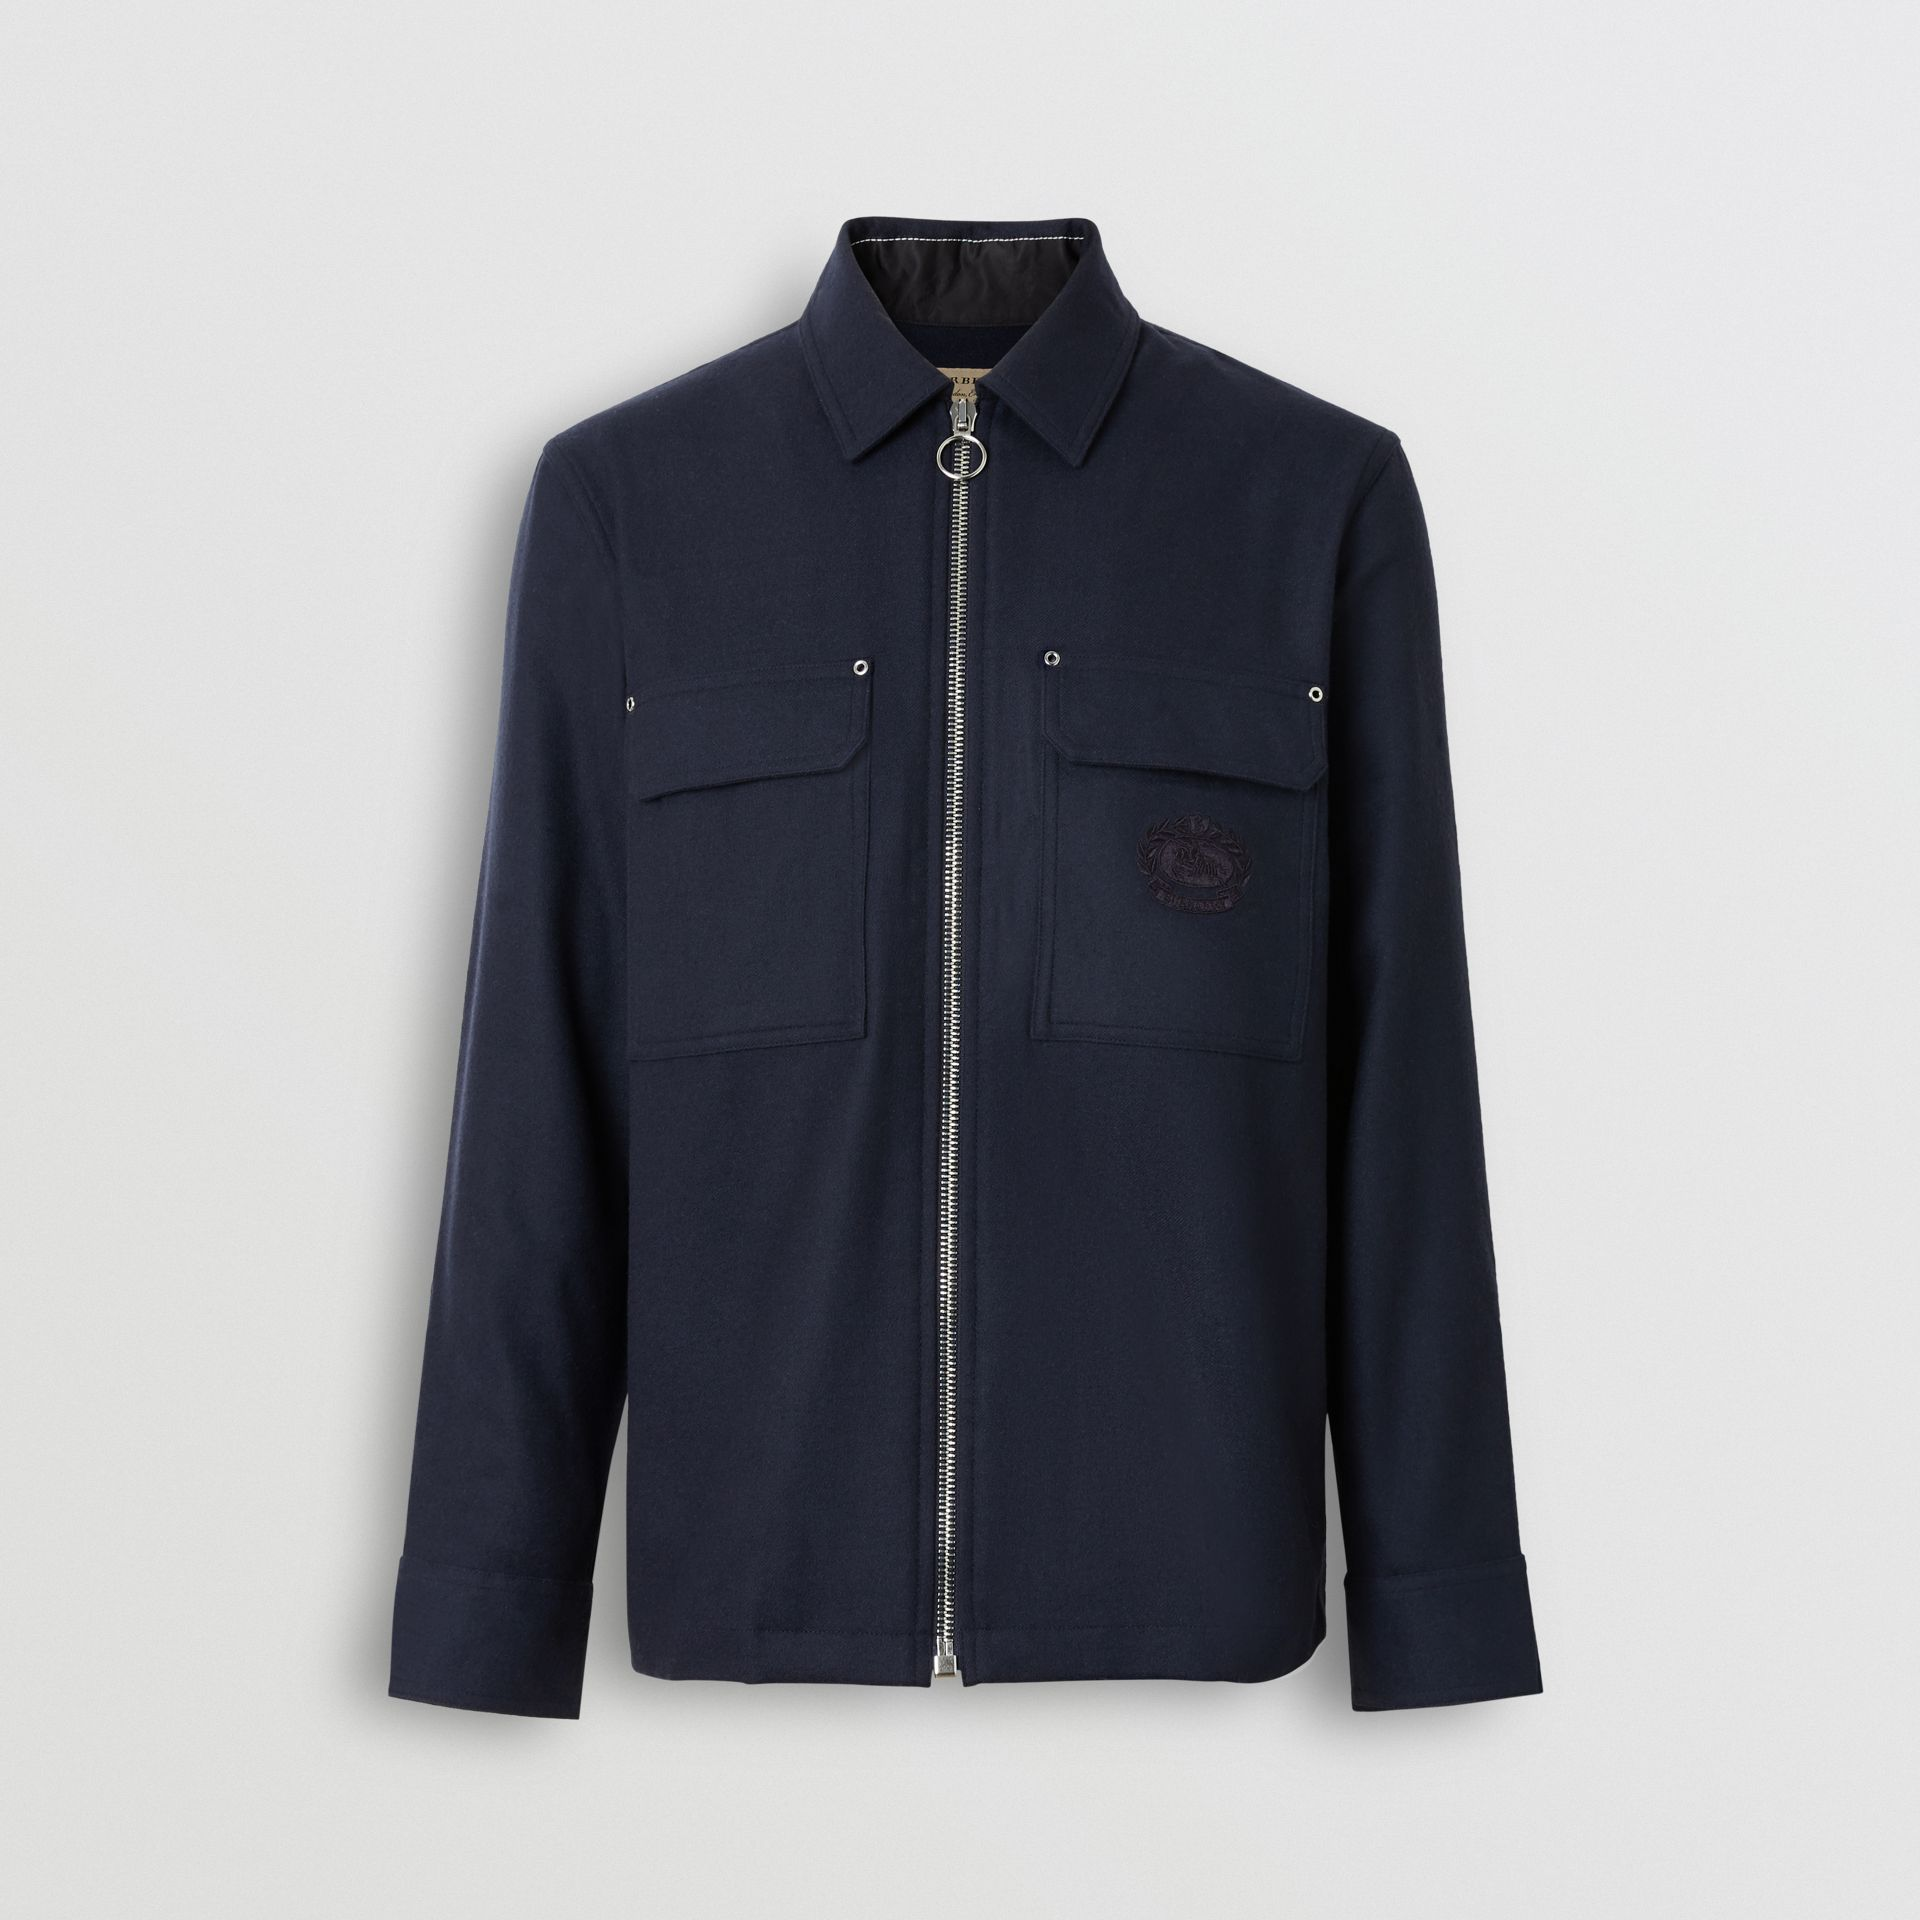 Embroidered Crest Wool Overshirt in Navy - Men | Burberry - gallery image 3